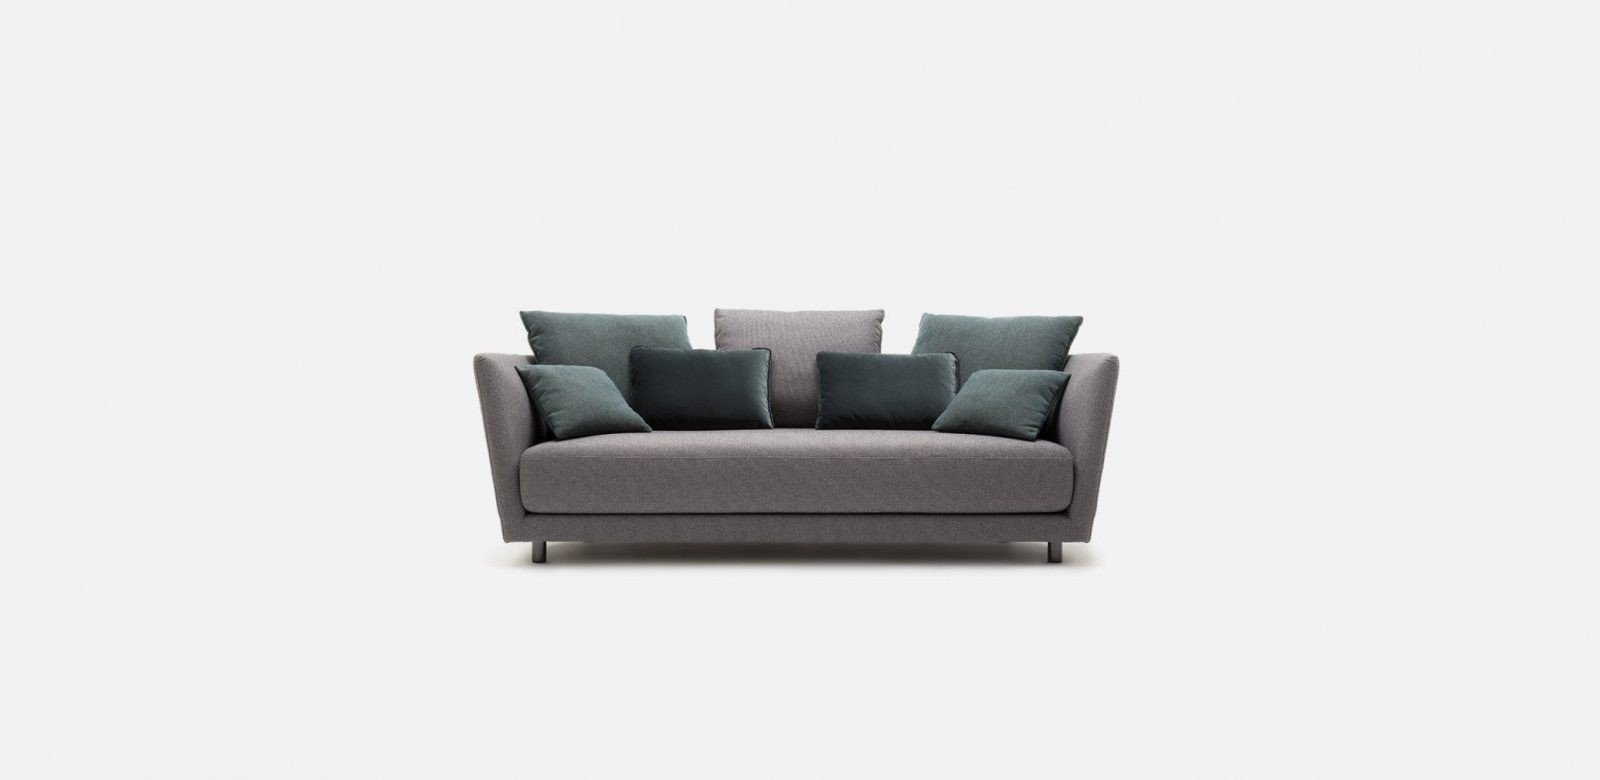 Sofas Von Rolf Benz Sofa 322 Photo Haus Design Ideen